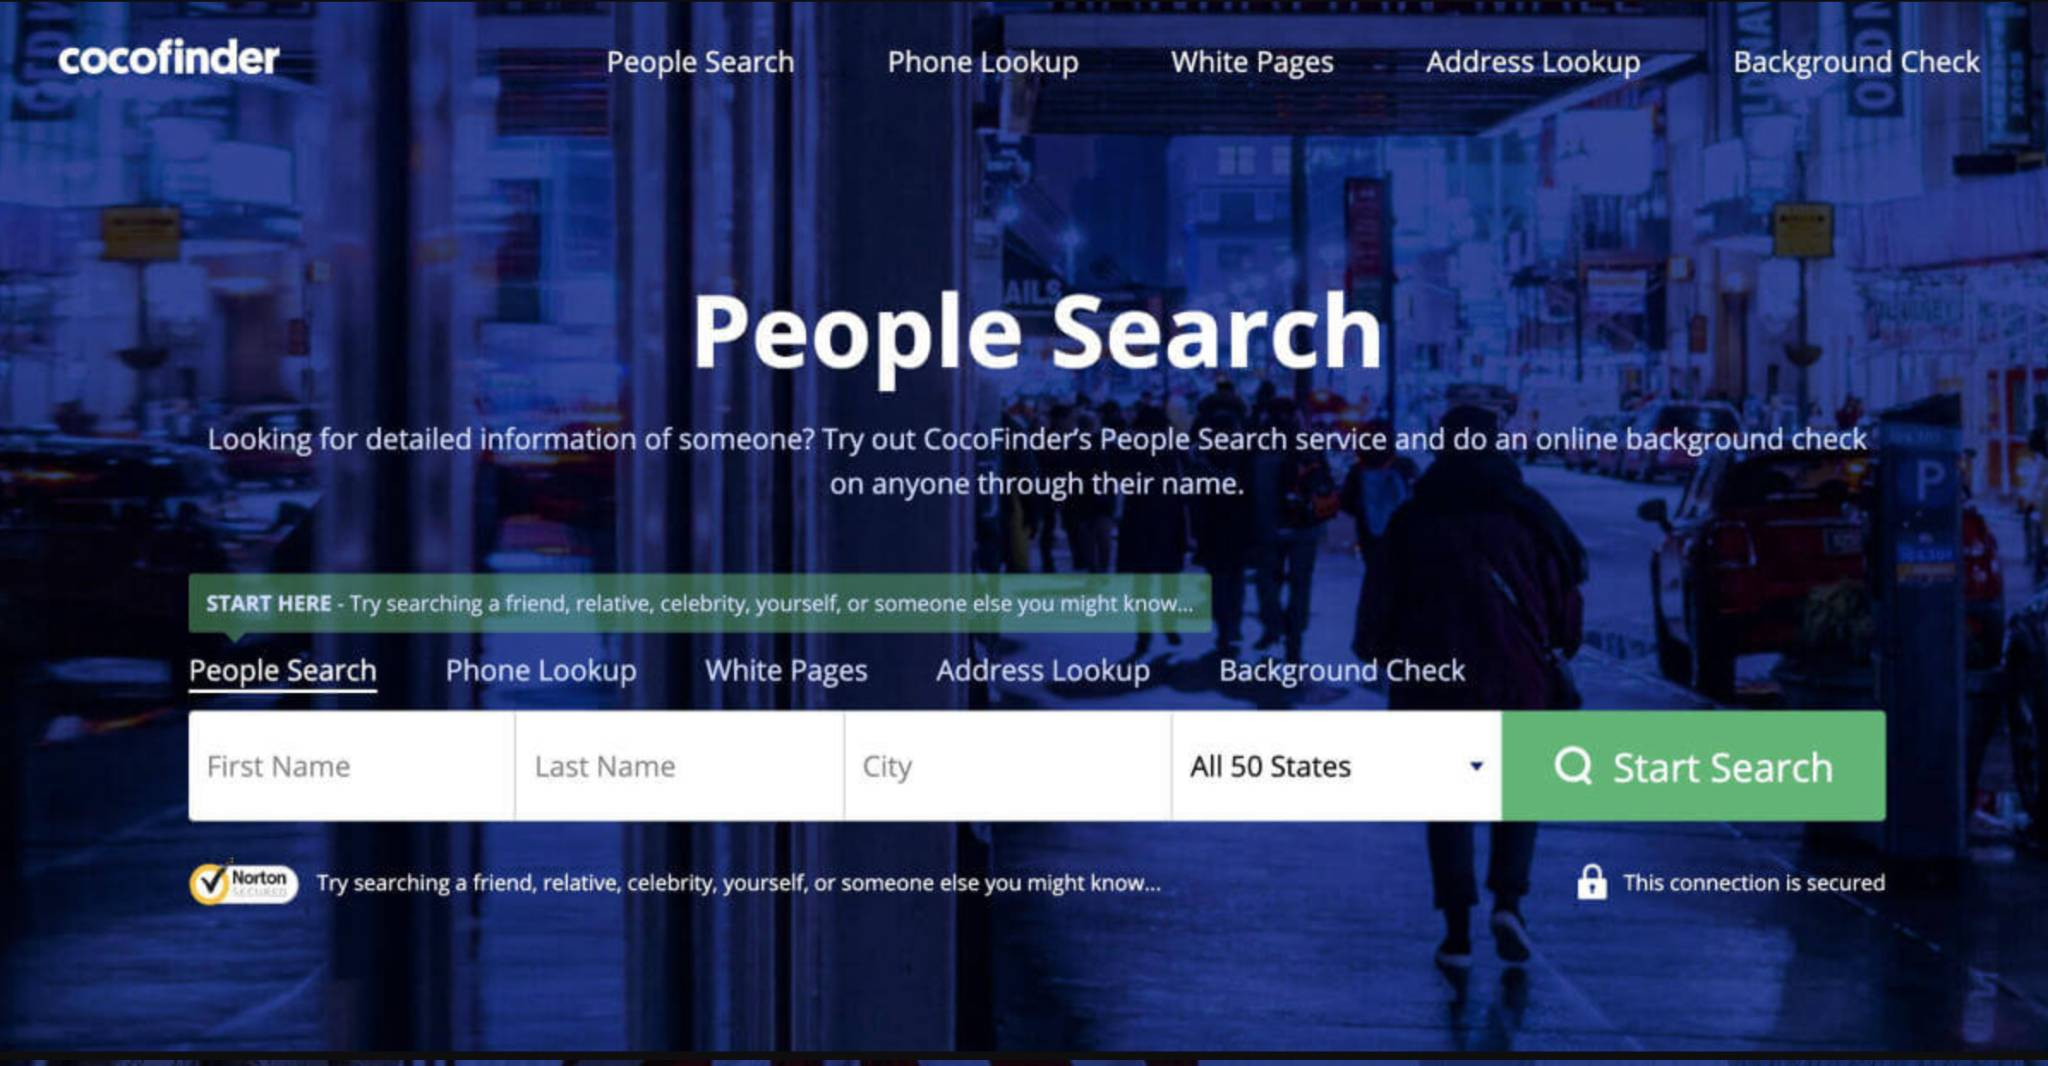 How to Use CocoFinders People Search Tool